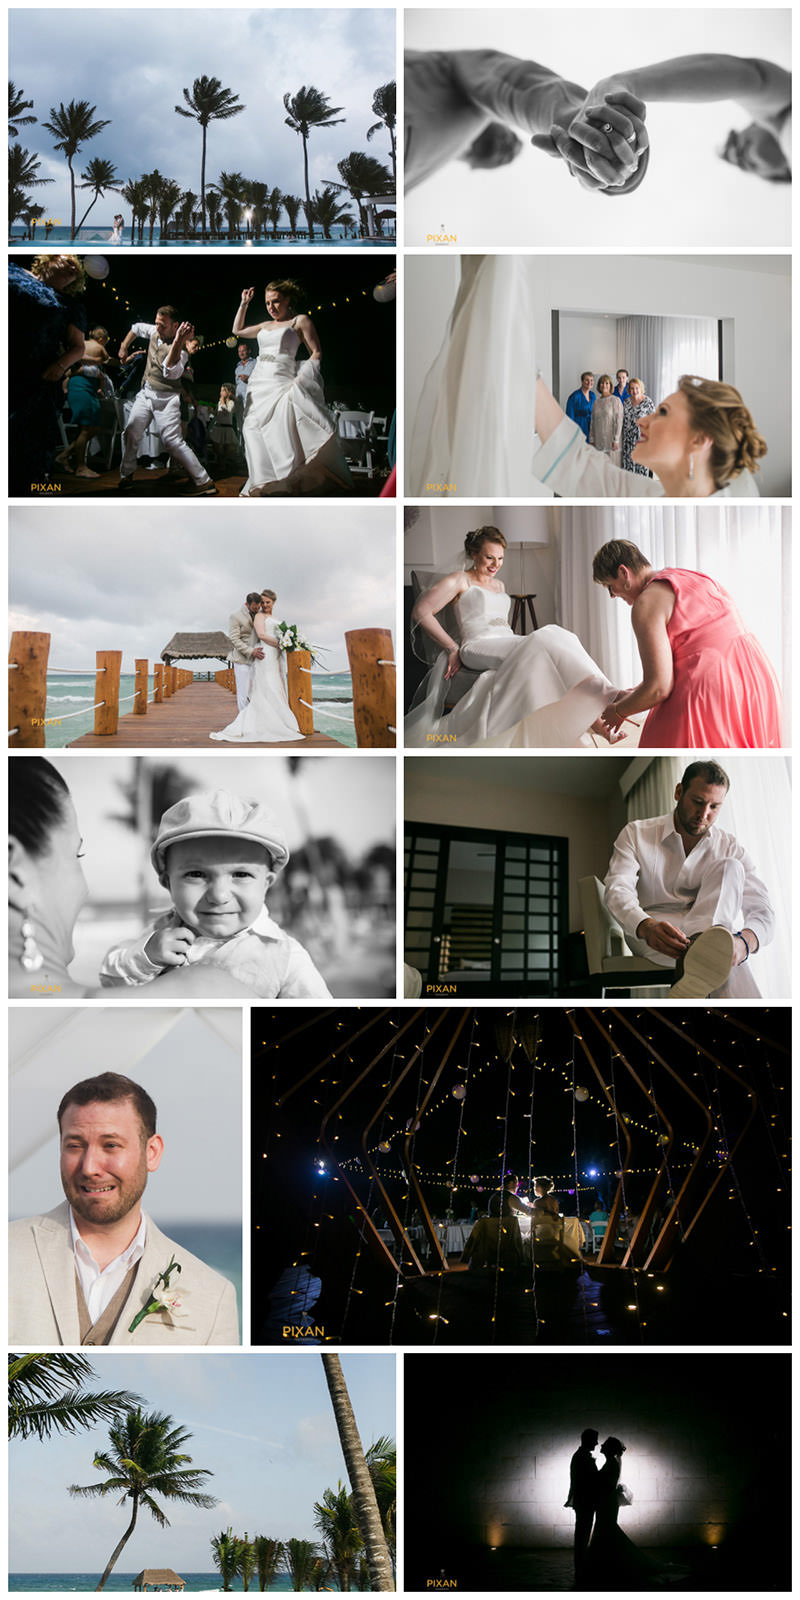 azul-fives-wedding-collage